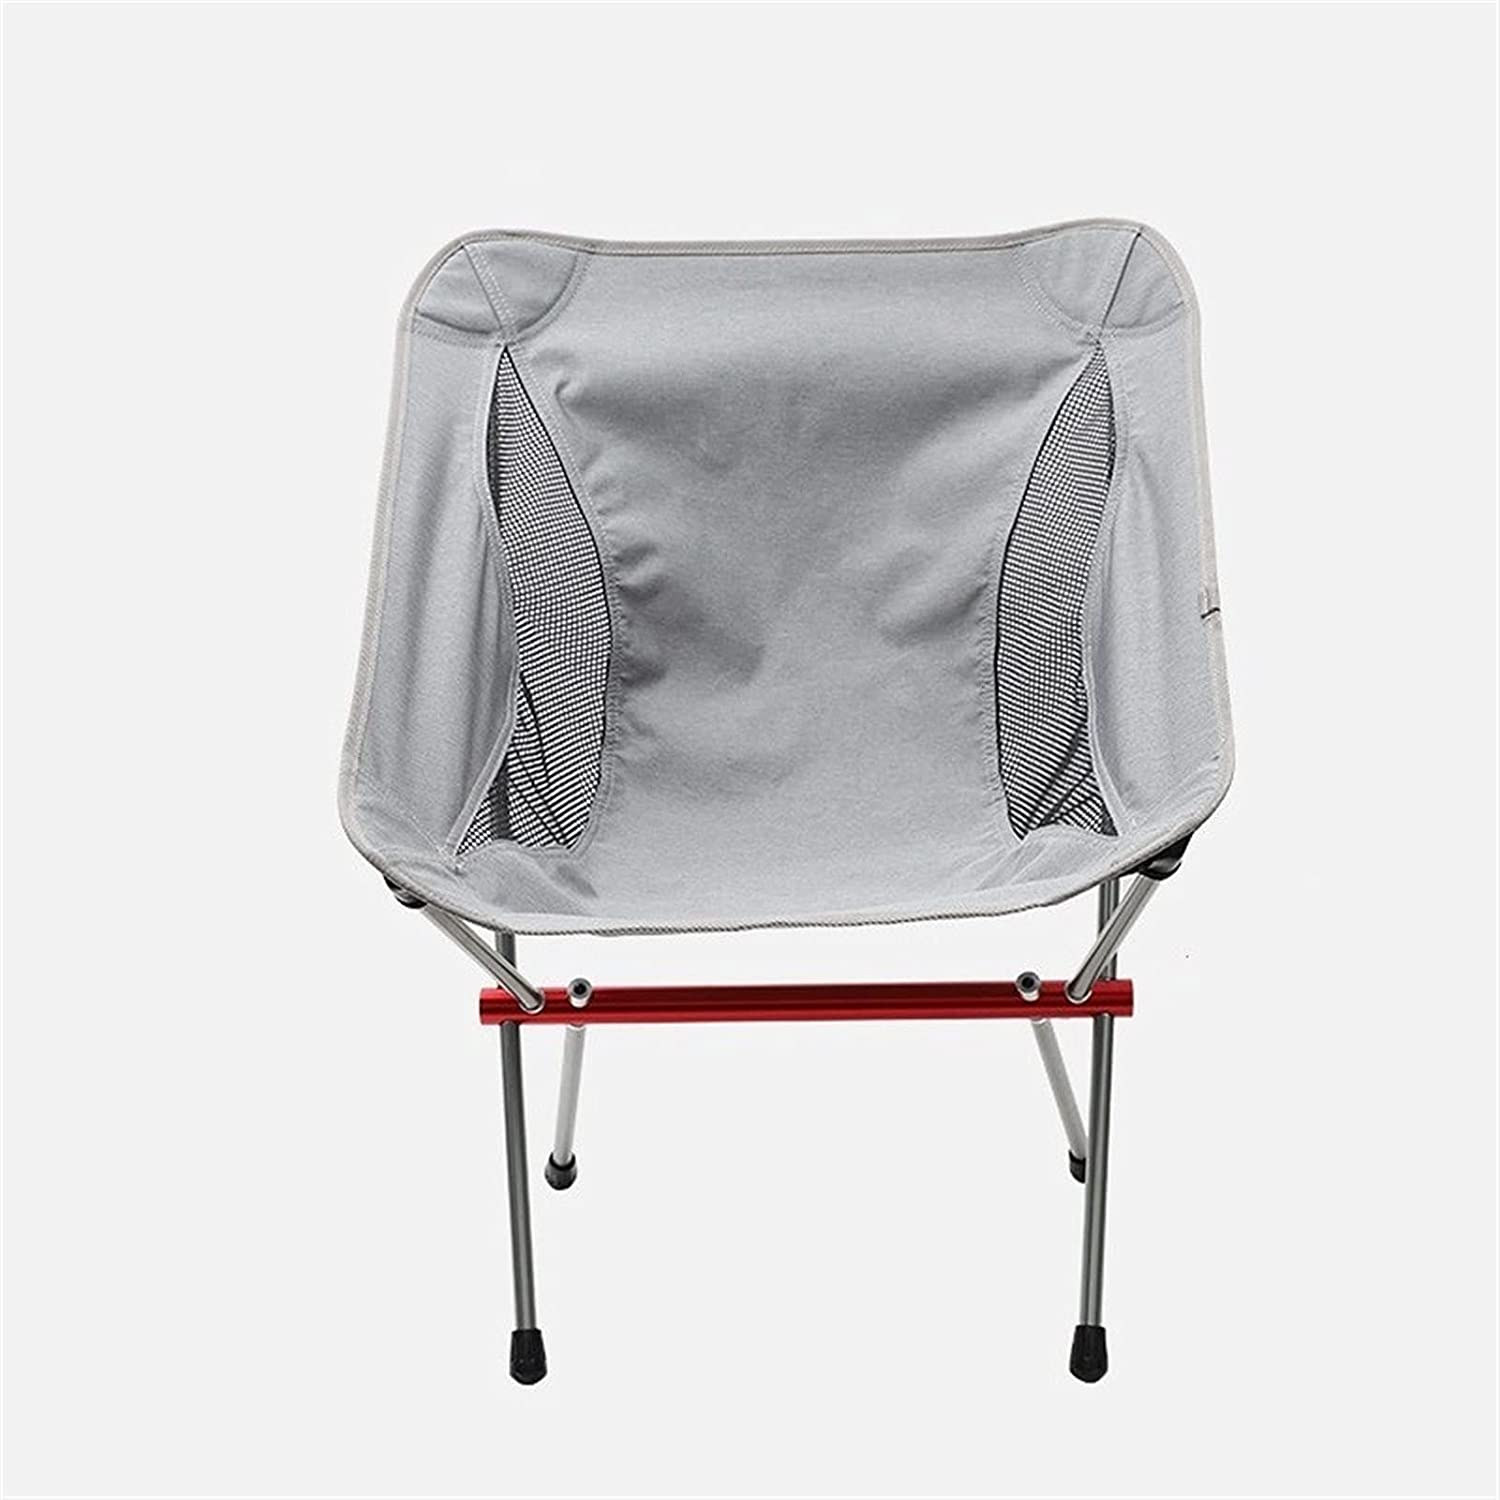 JSJJAUJ Camping Chairs Ultralight Max 58% OFF Special Campaign Chair Portable Backpac